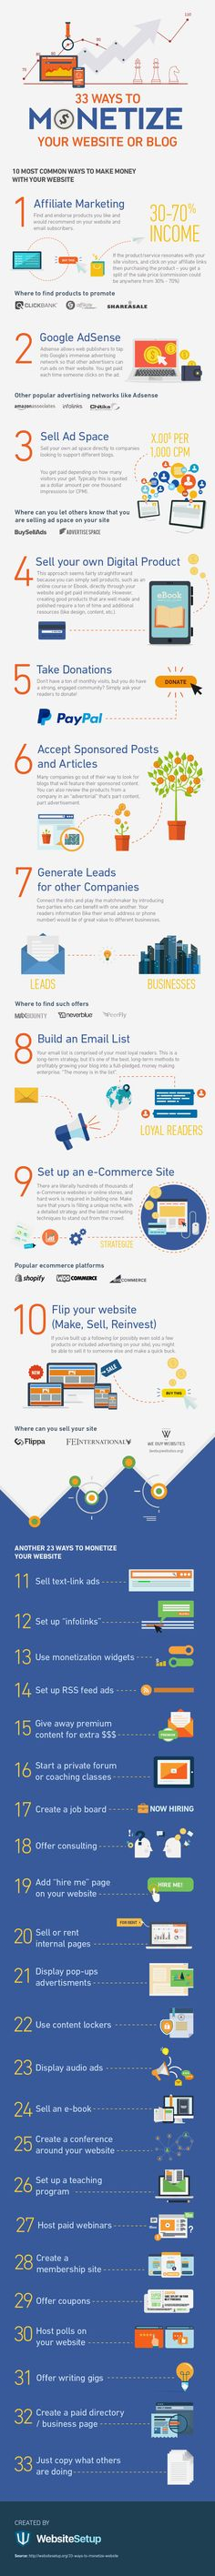 33 Ways To Monetize Your Website or a Blog - infographic